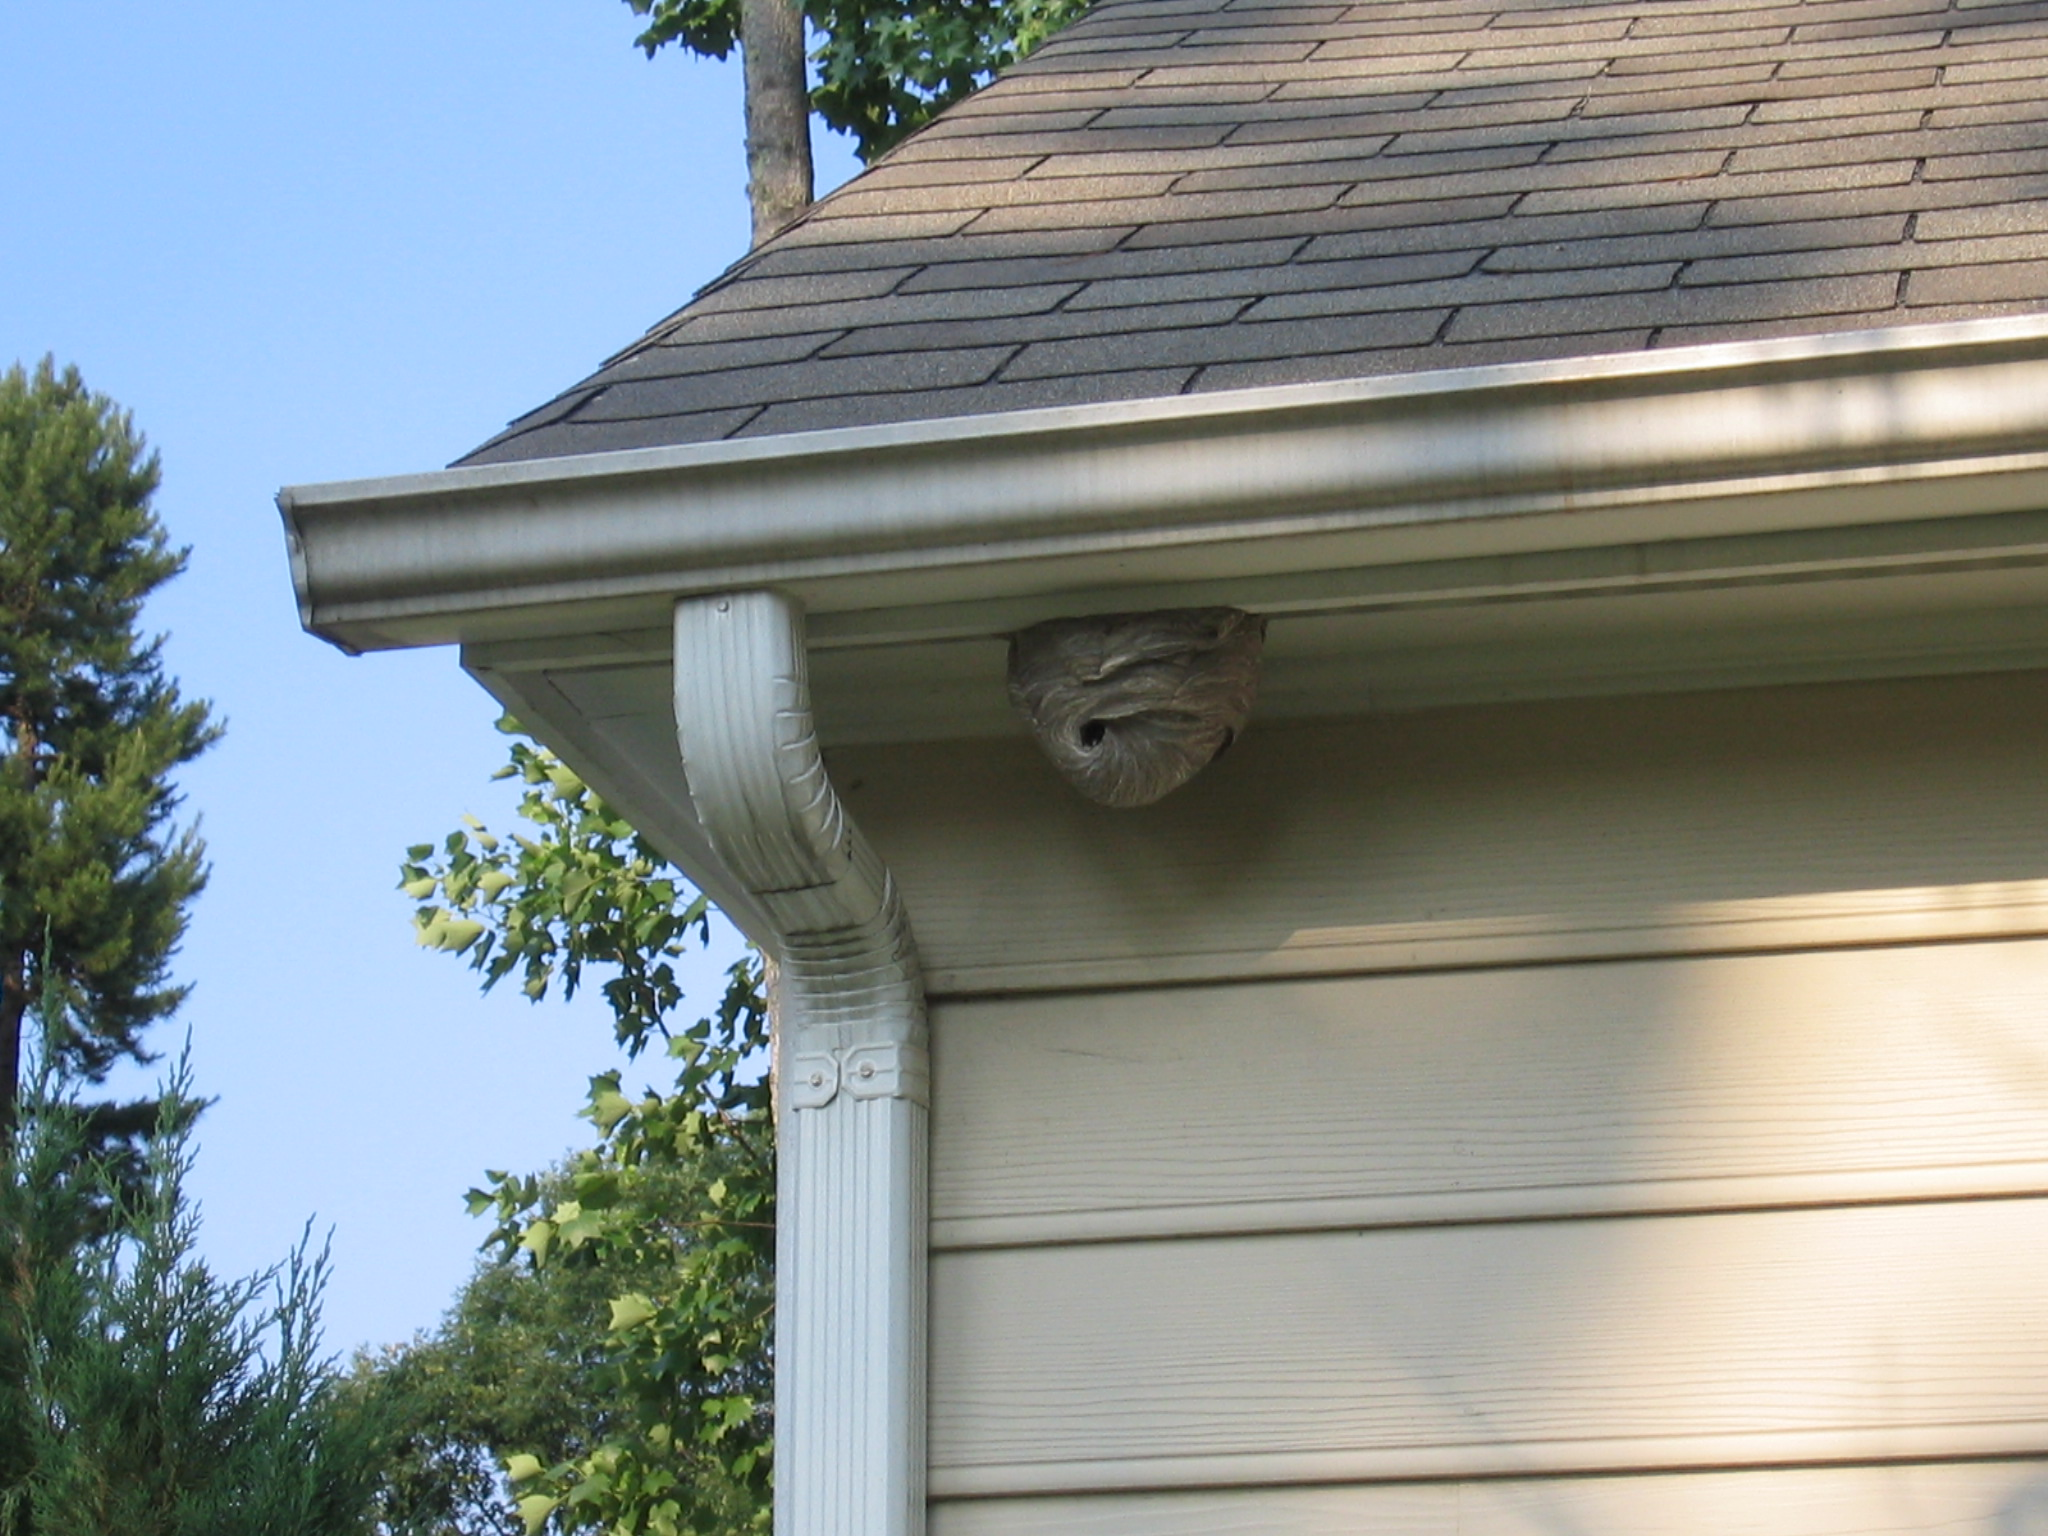 Hornet Nest Removal How To Get Rid Of Hornets Safely And